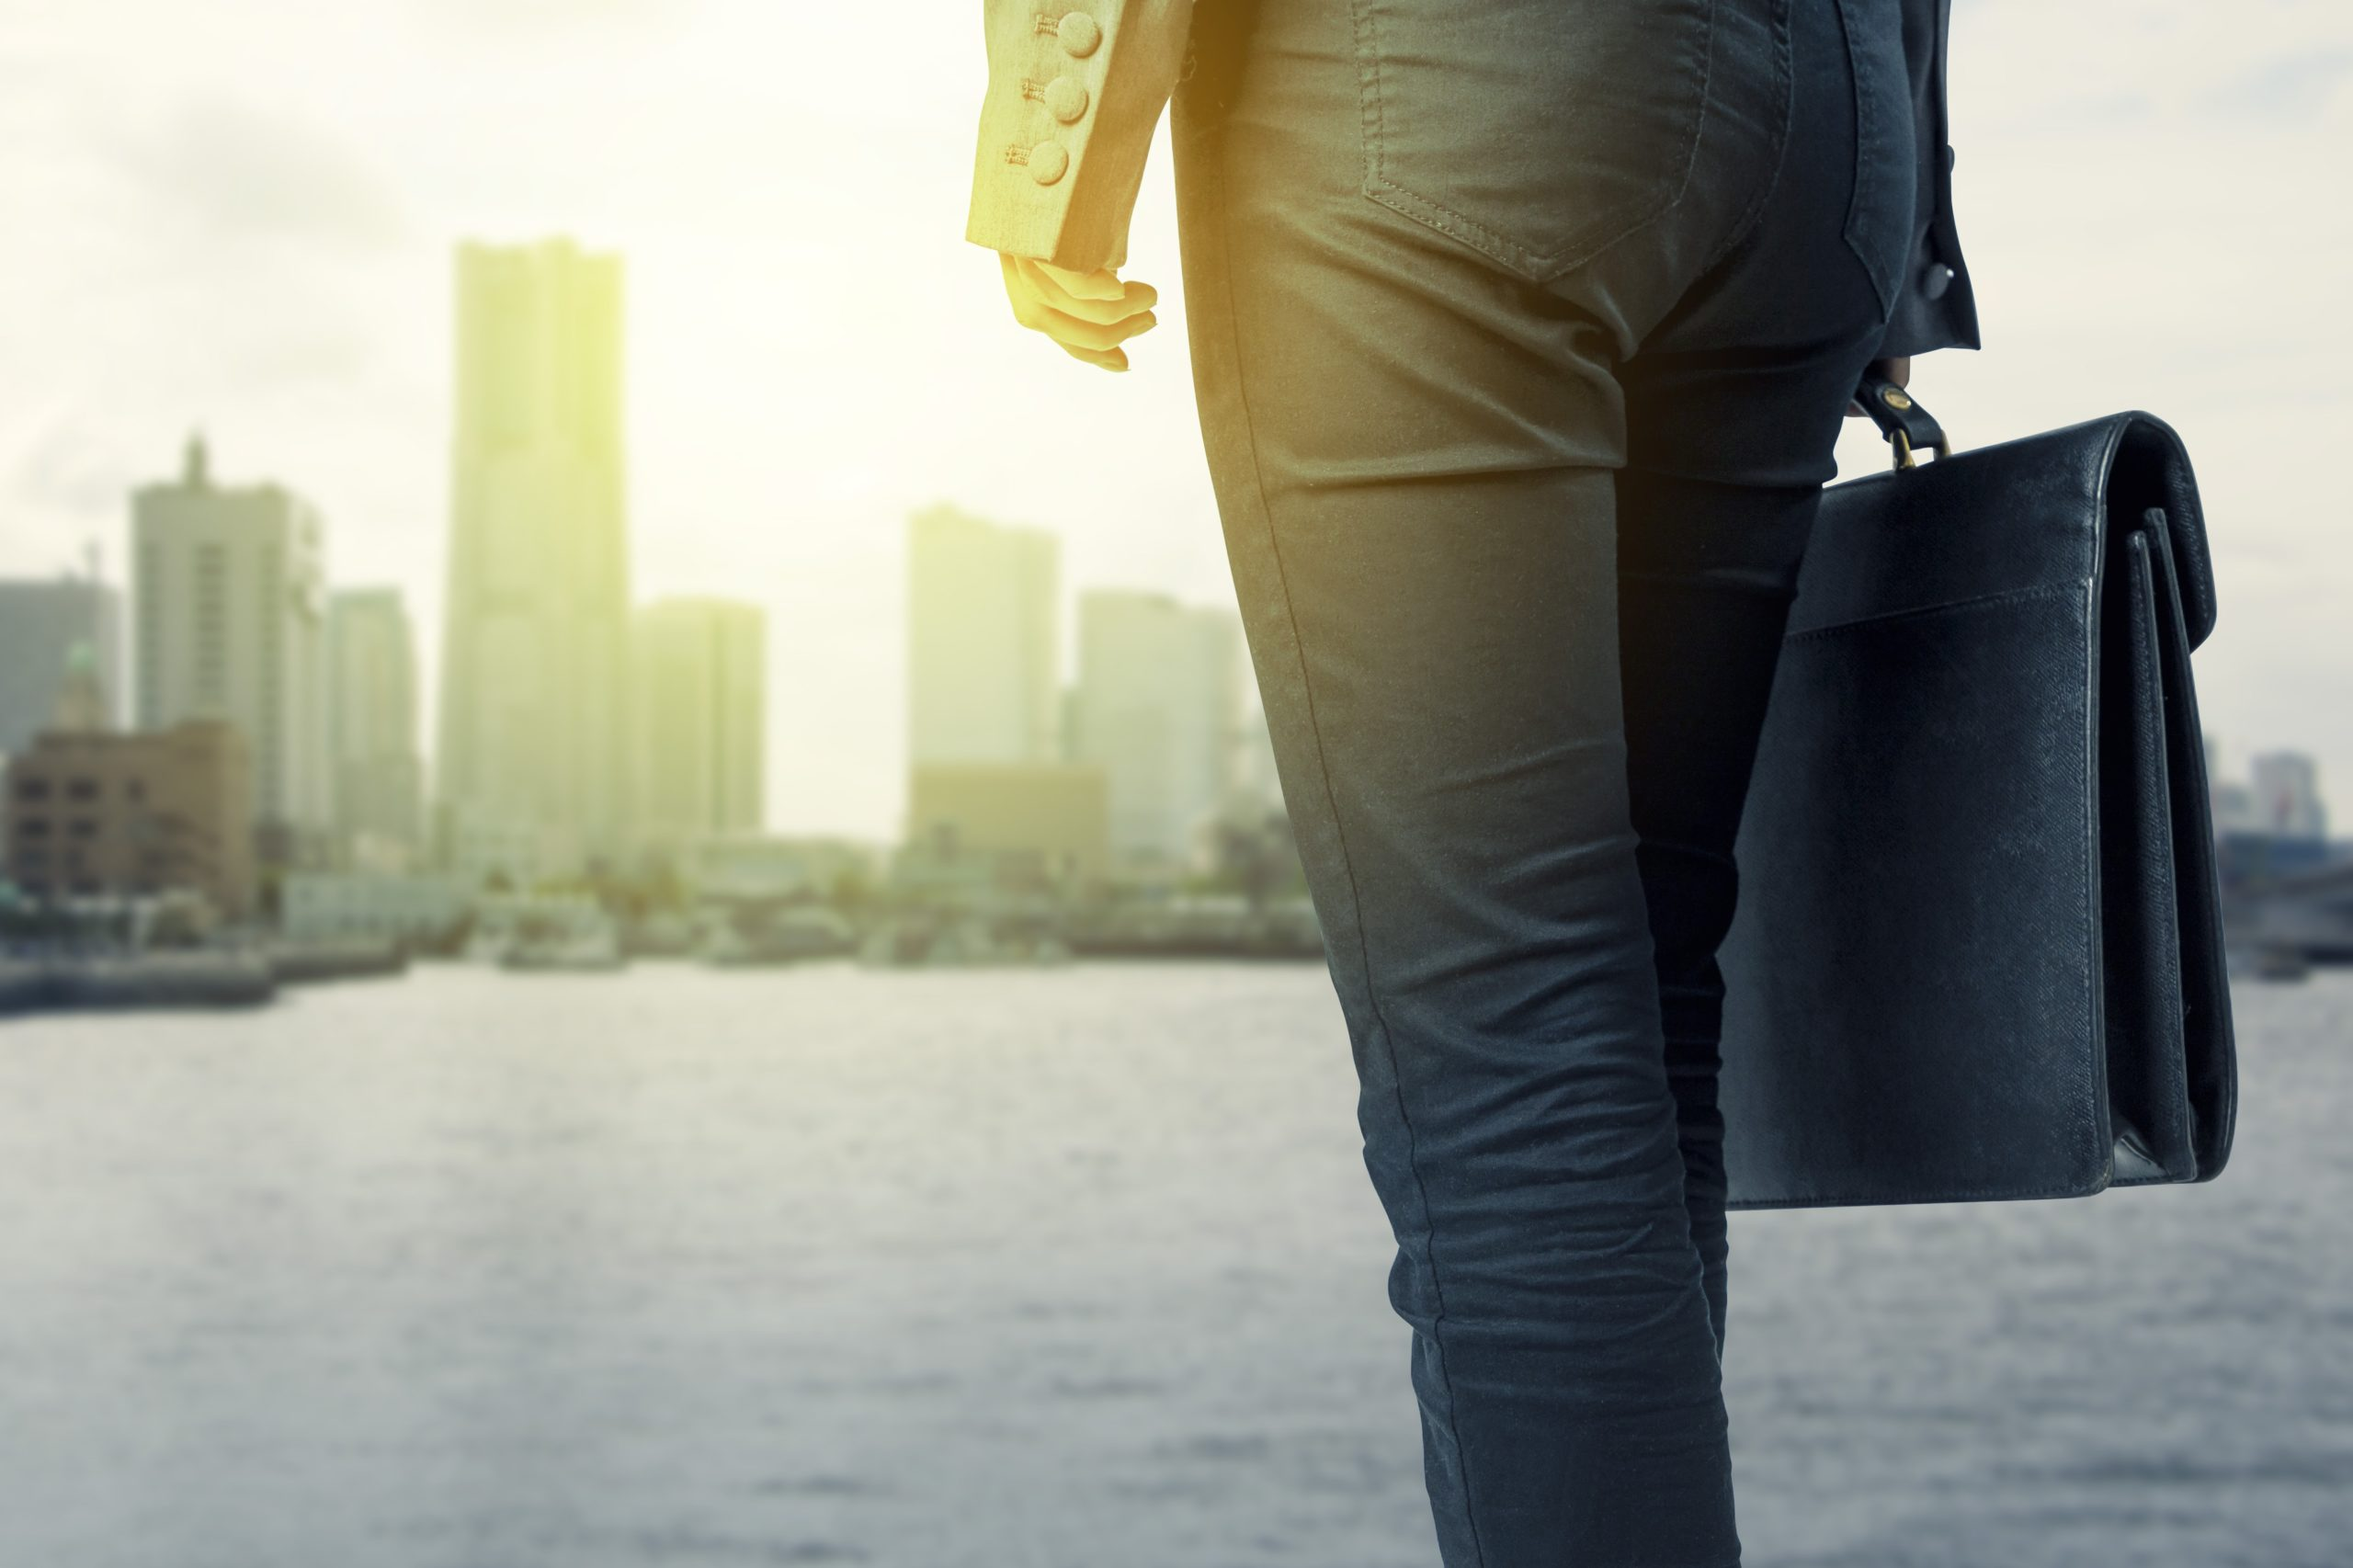 Close up of a person holding a briefcase in front of a harbor with a city in the background